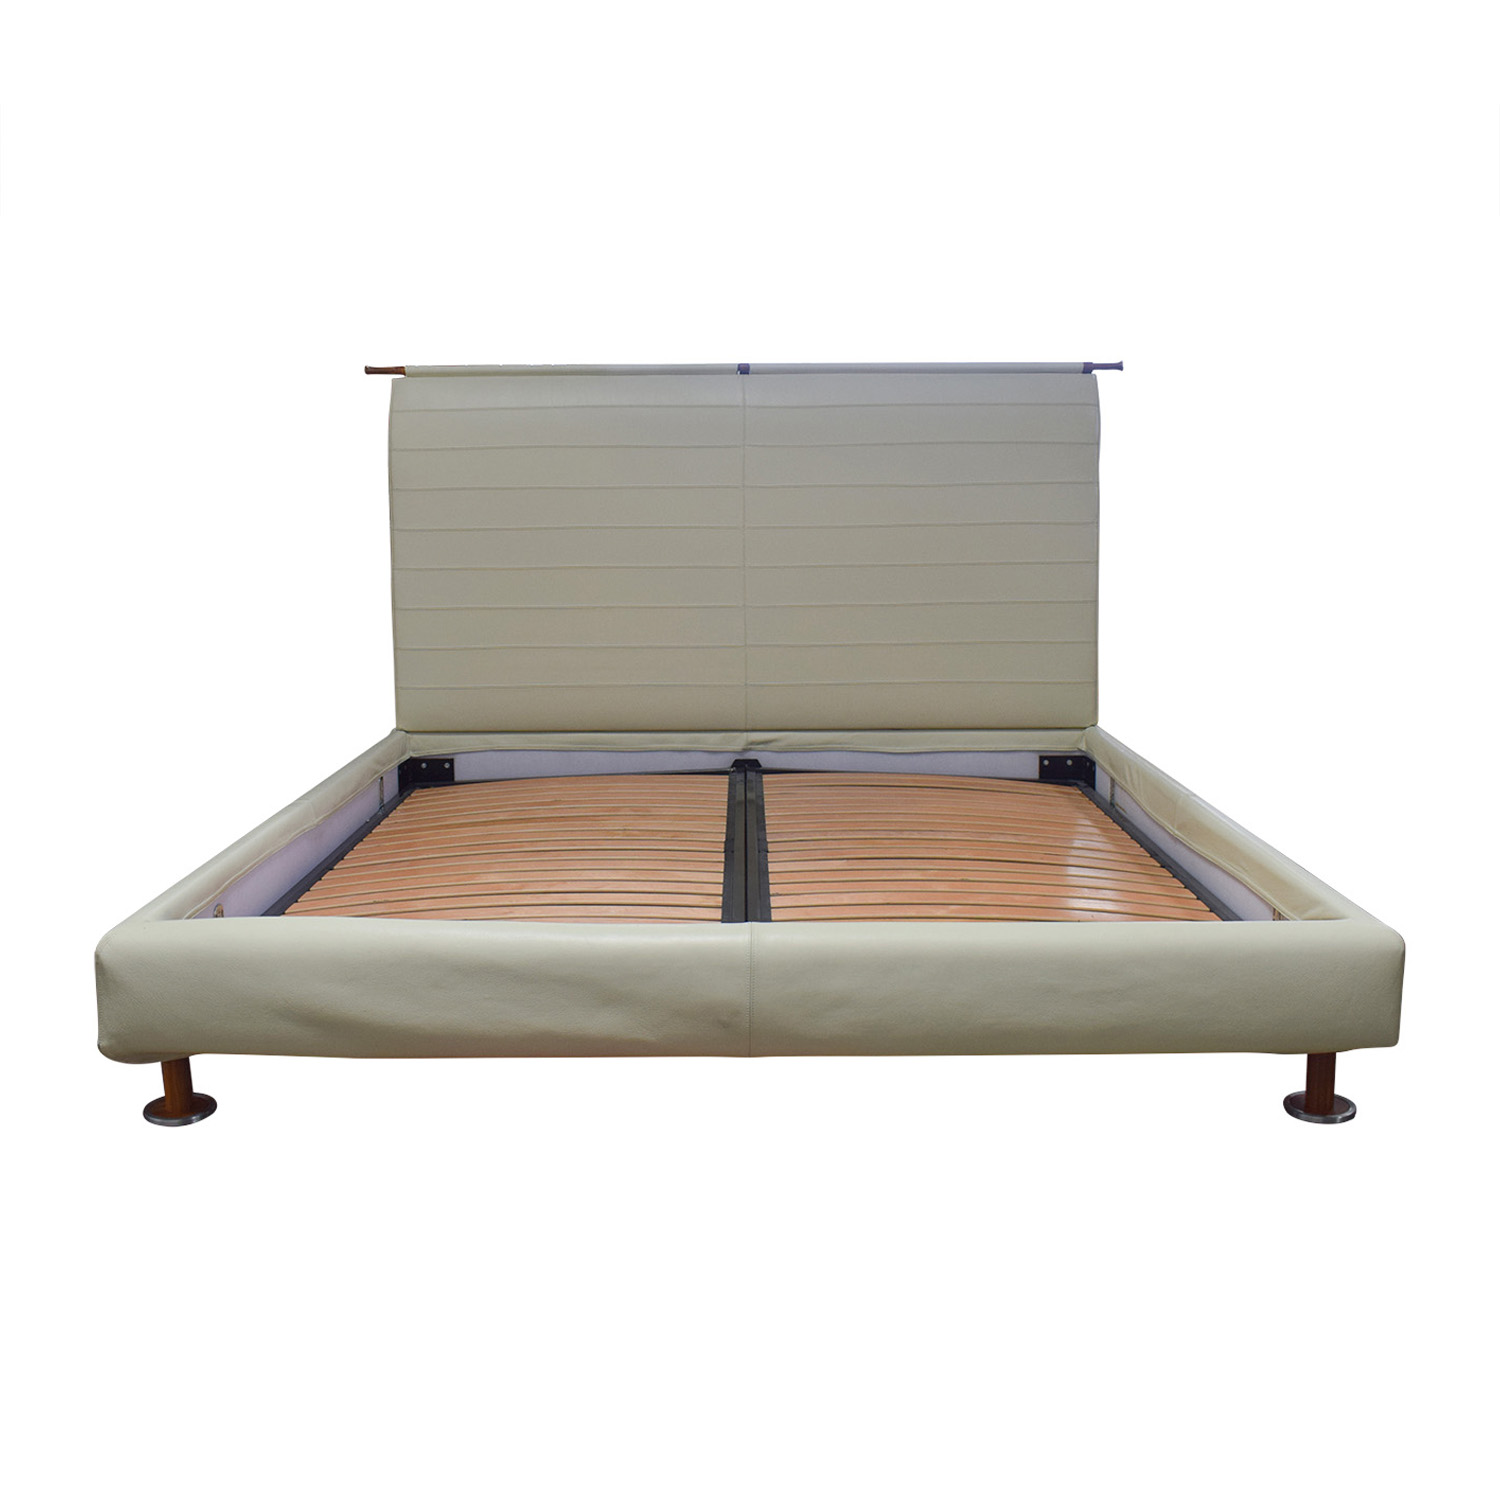 Giorgetti Giorgetti Kao King Bed Frame on sale